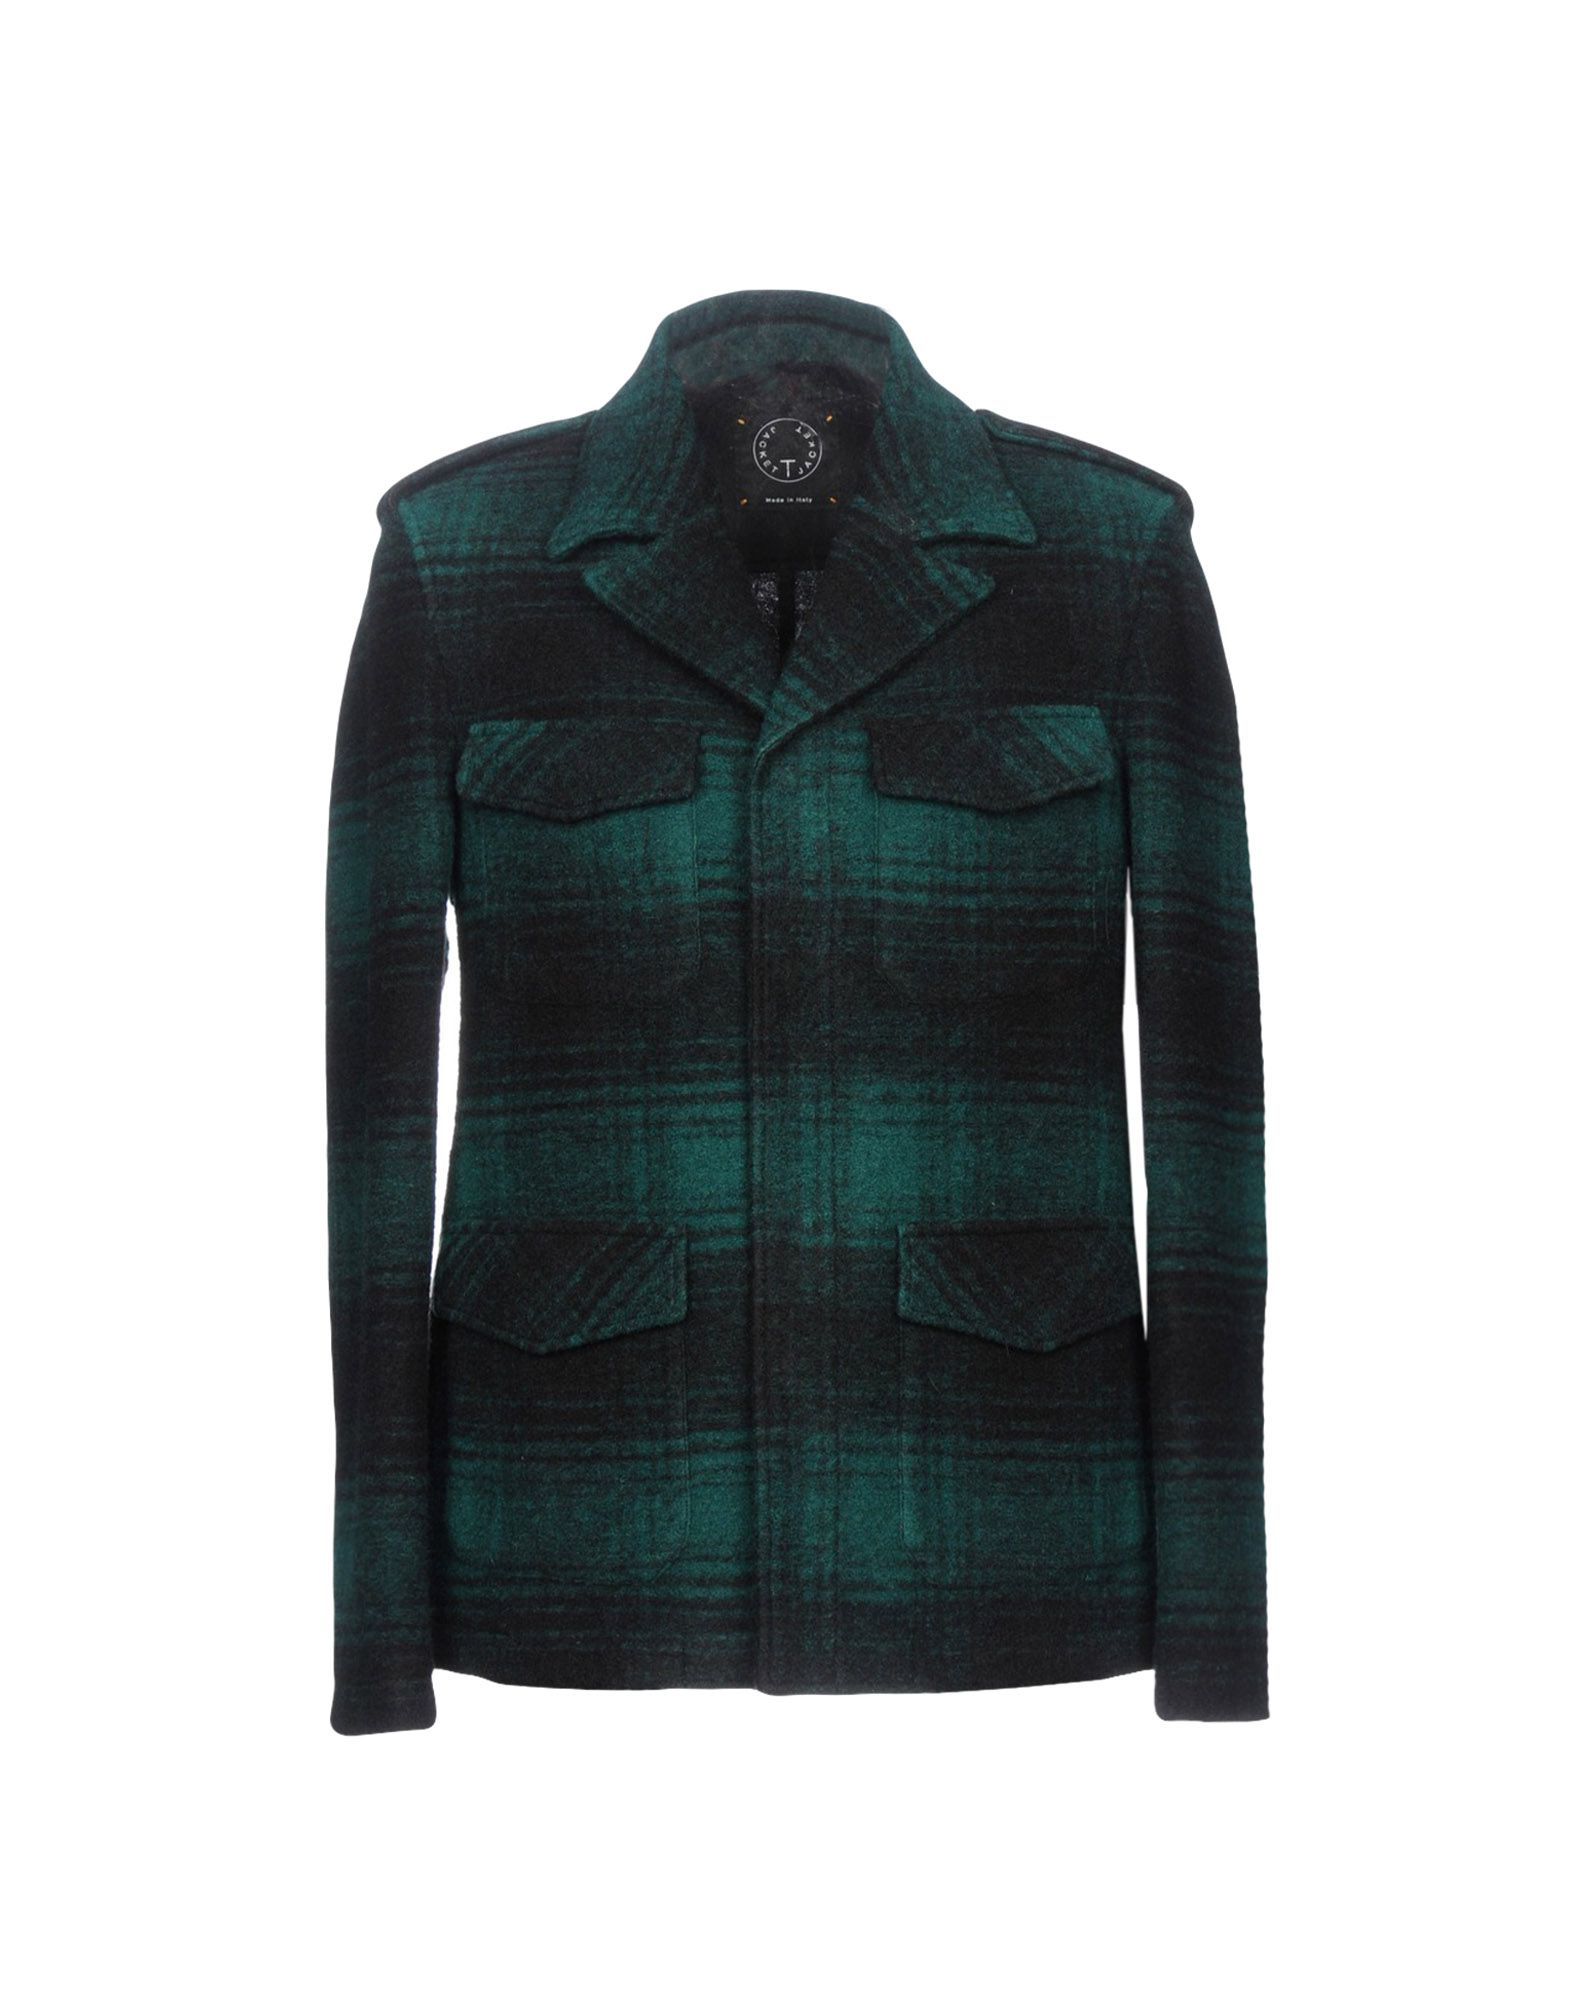 T-JACKET Jacket in Dark Green